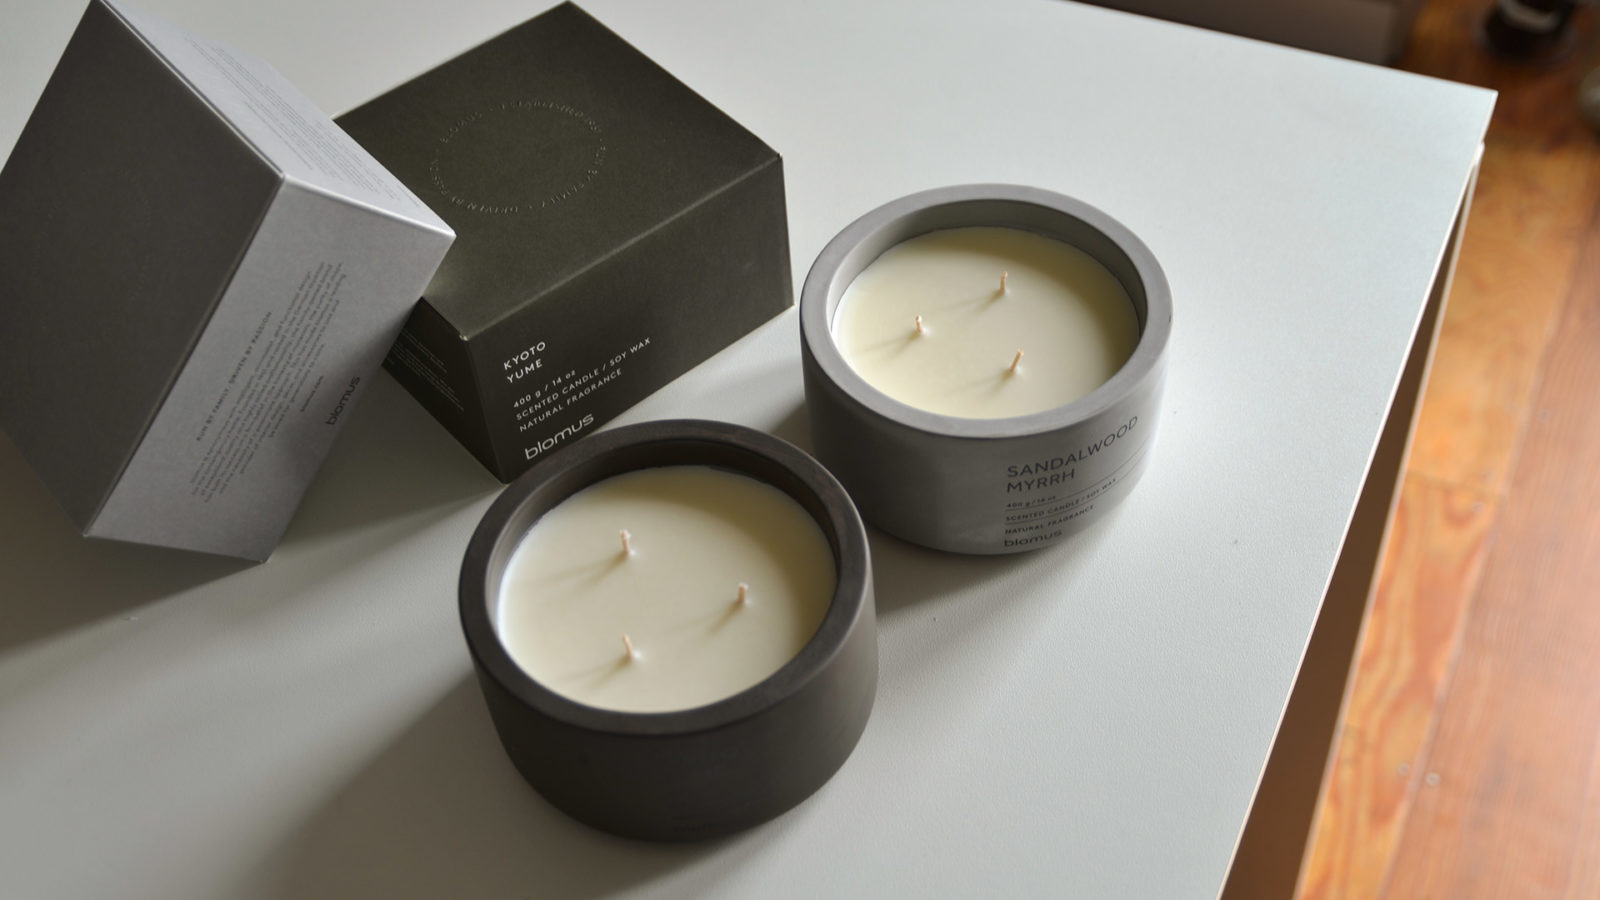 scented candles in concrete pots